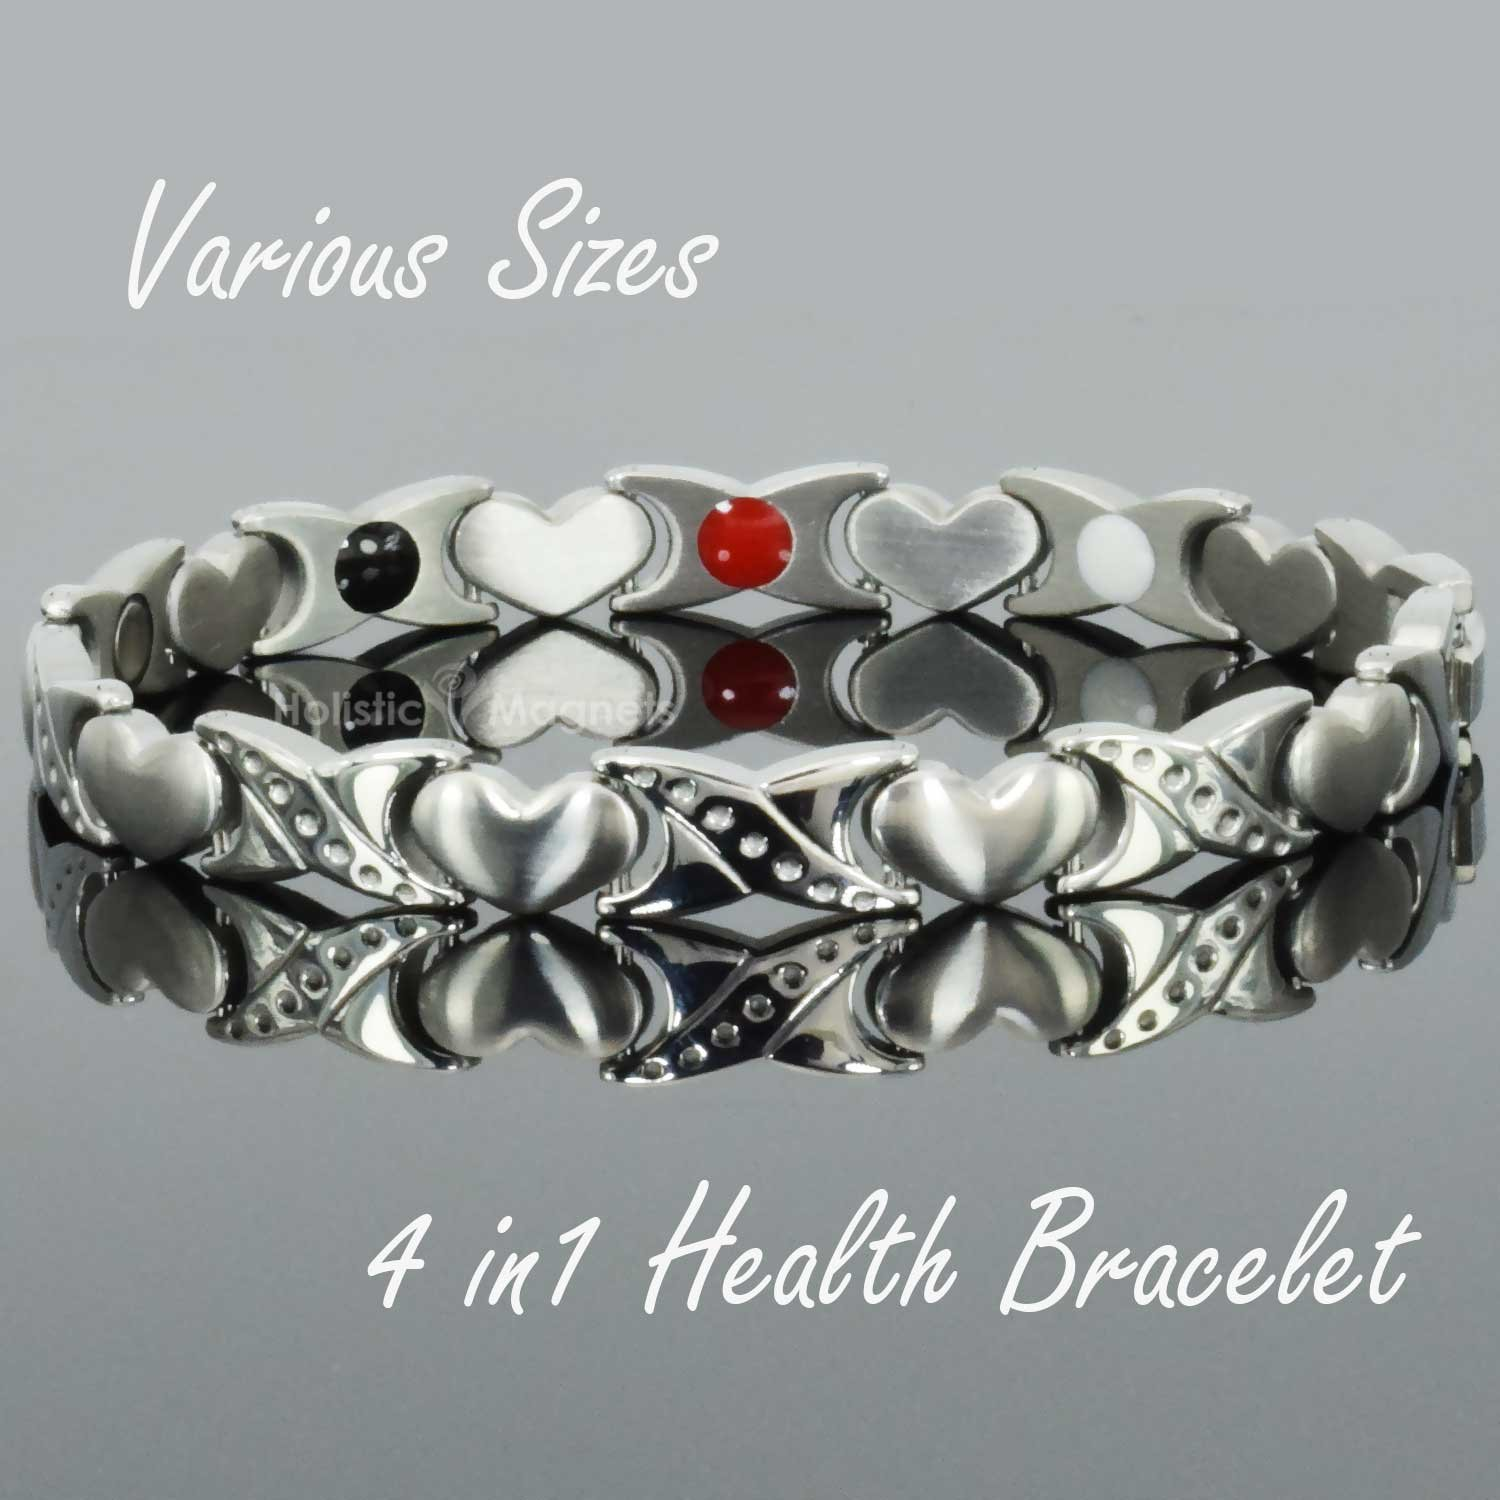 psihii cardiac dsc bracelet products